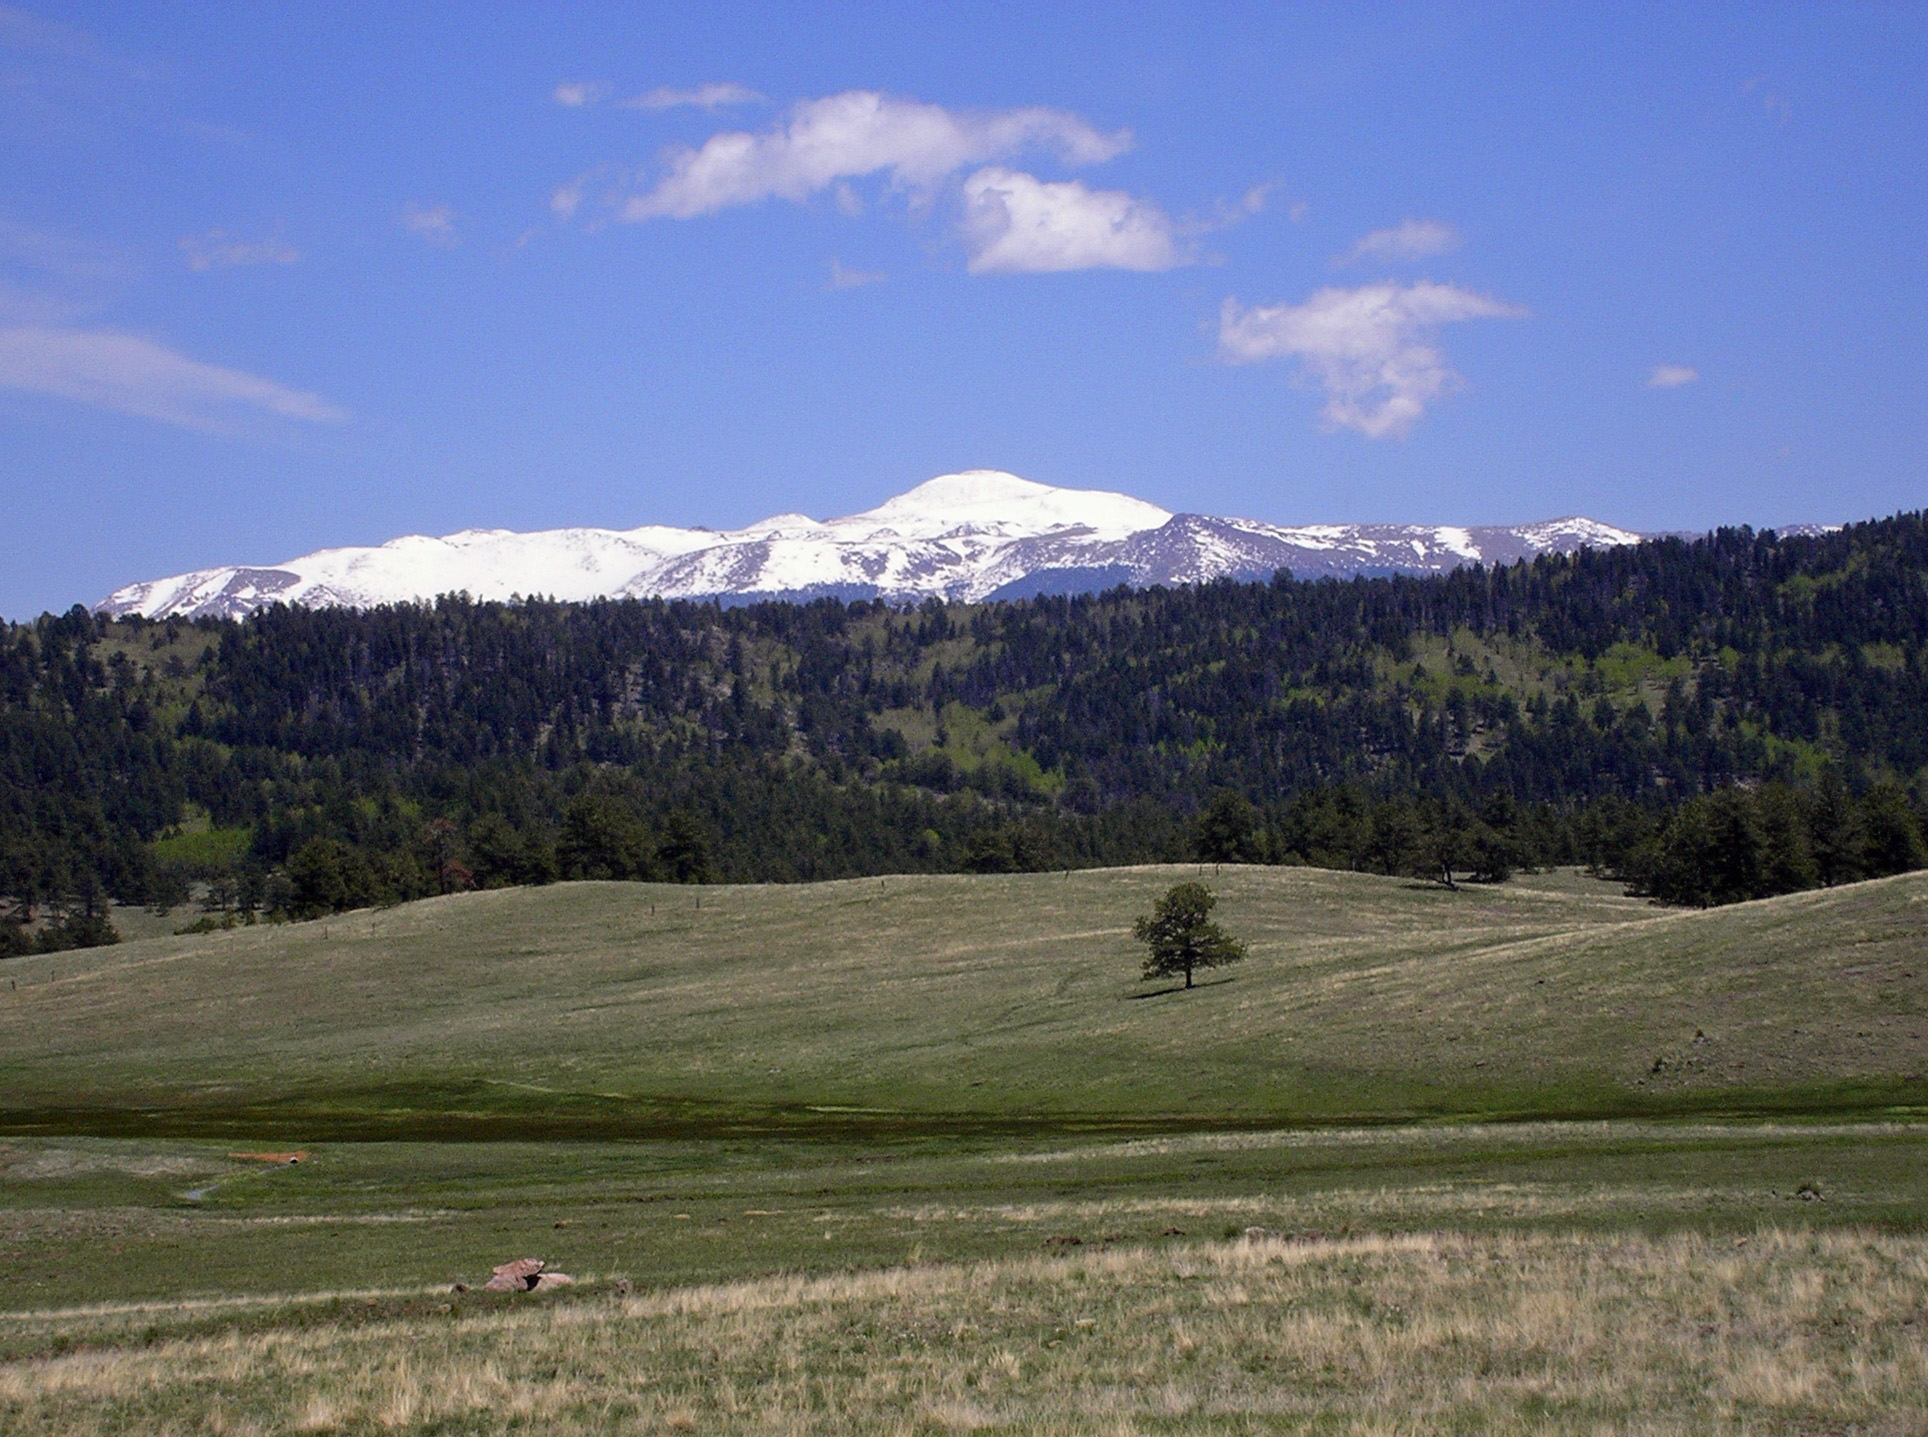 Sanborn Western Camps | Summer Camps in 2000 Old Stage Rd - Florissant CO - Reviews - Photos - Phone Number